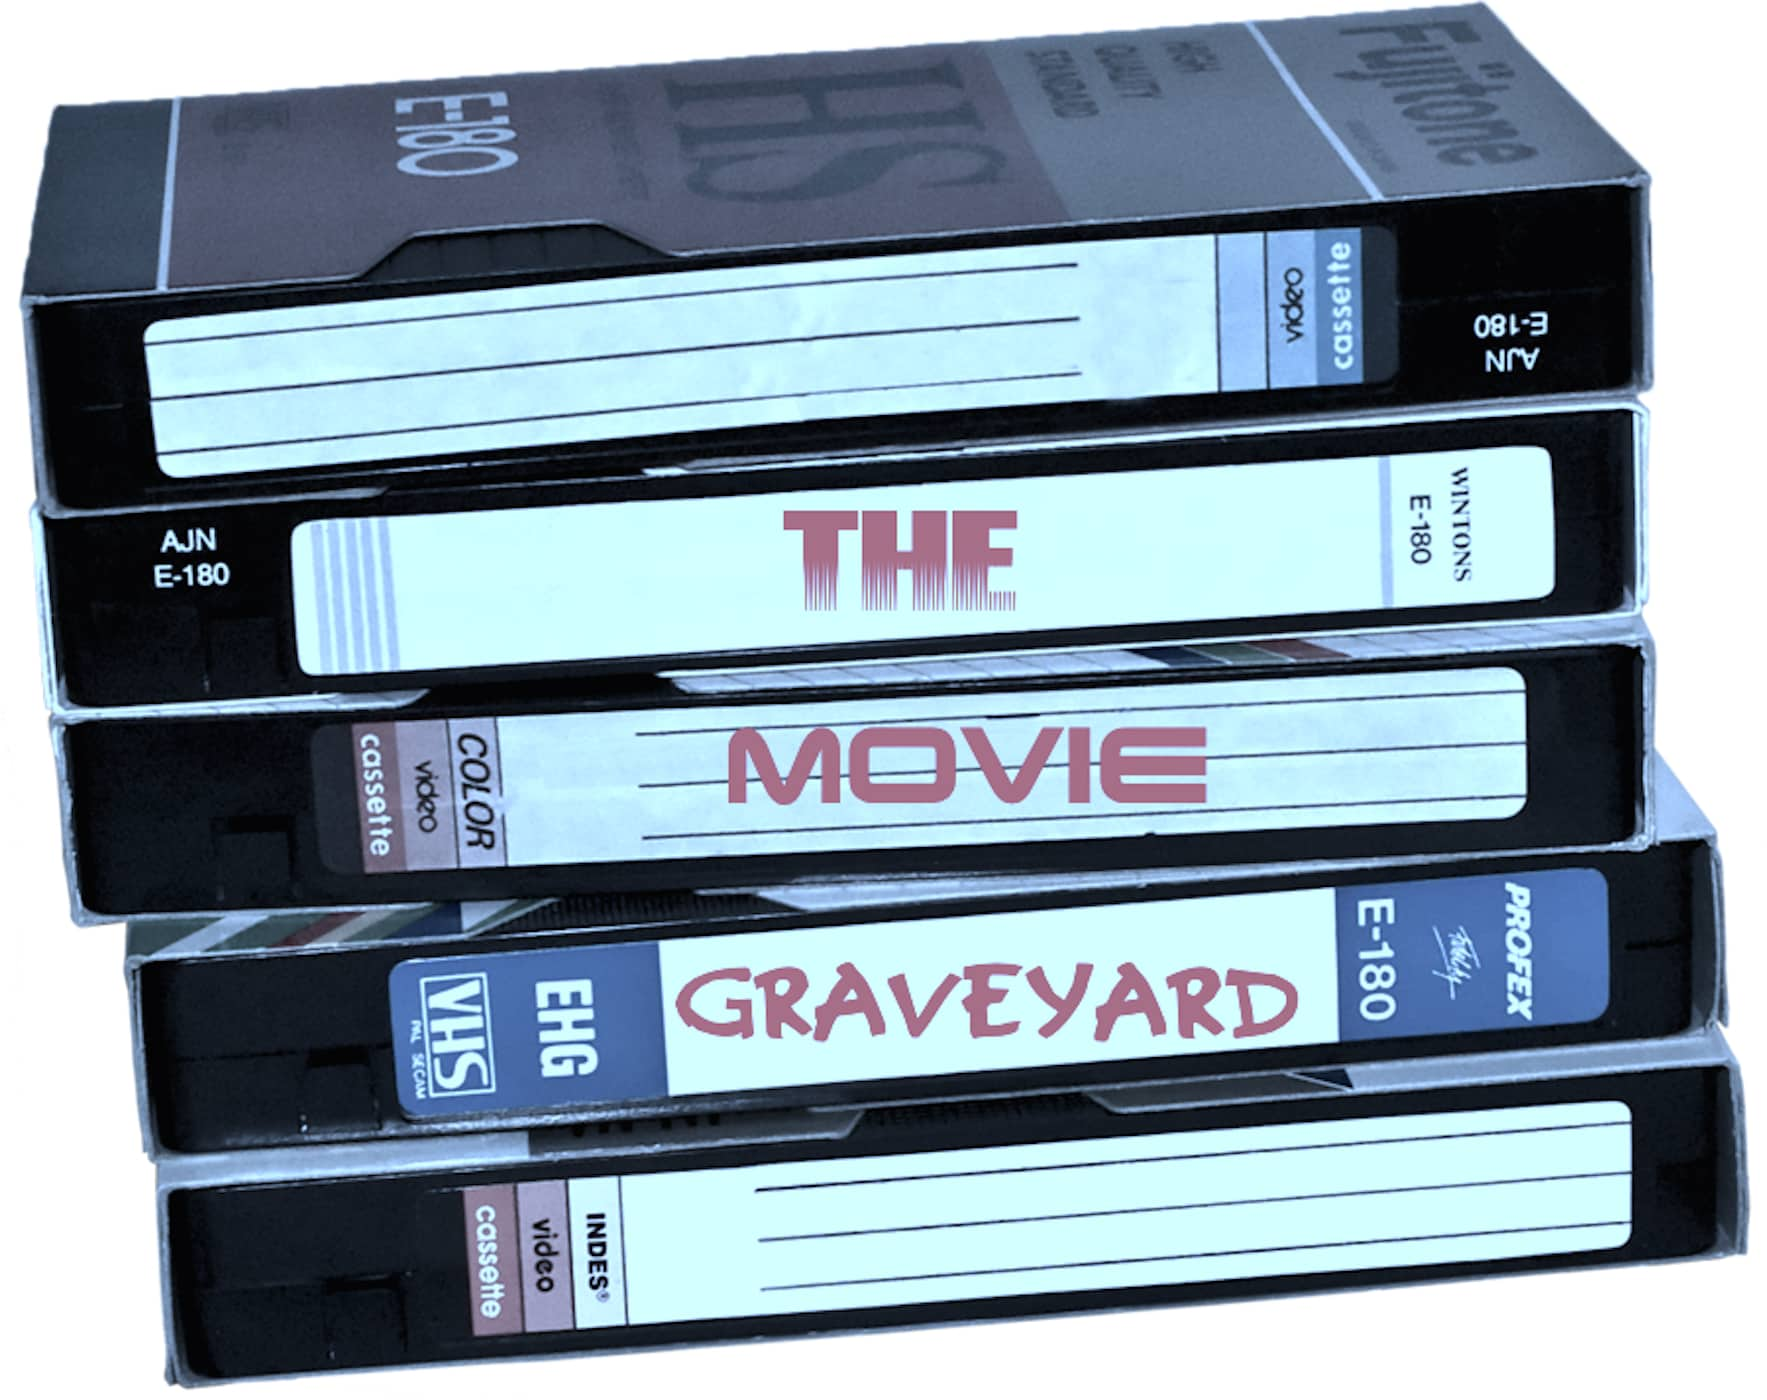 The Movie Graveyard